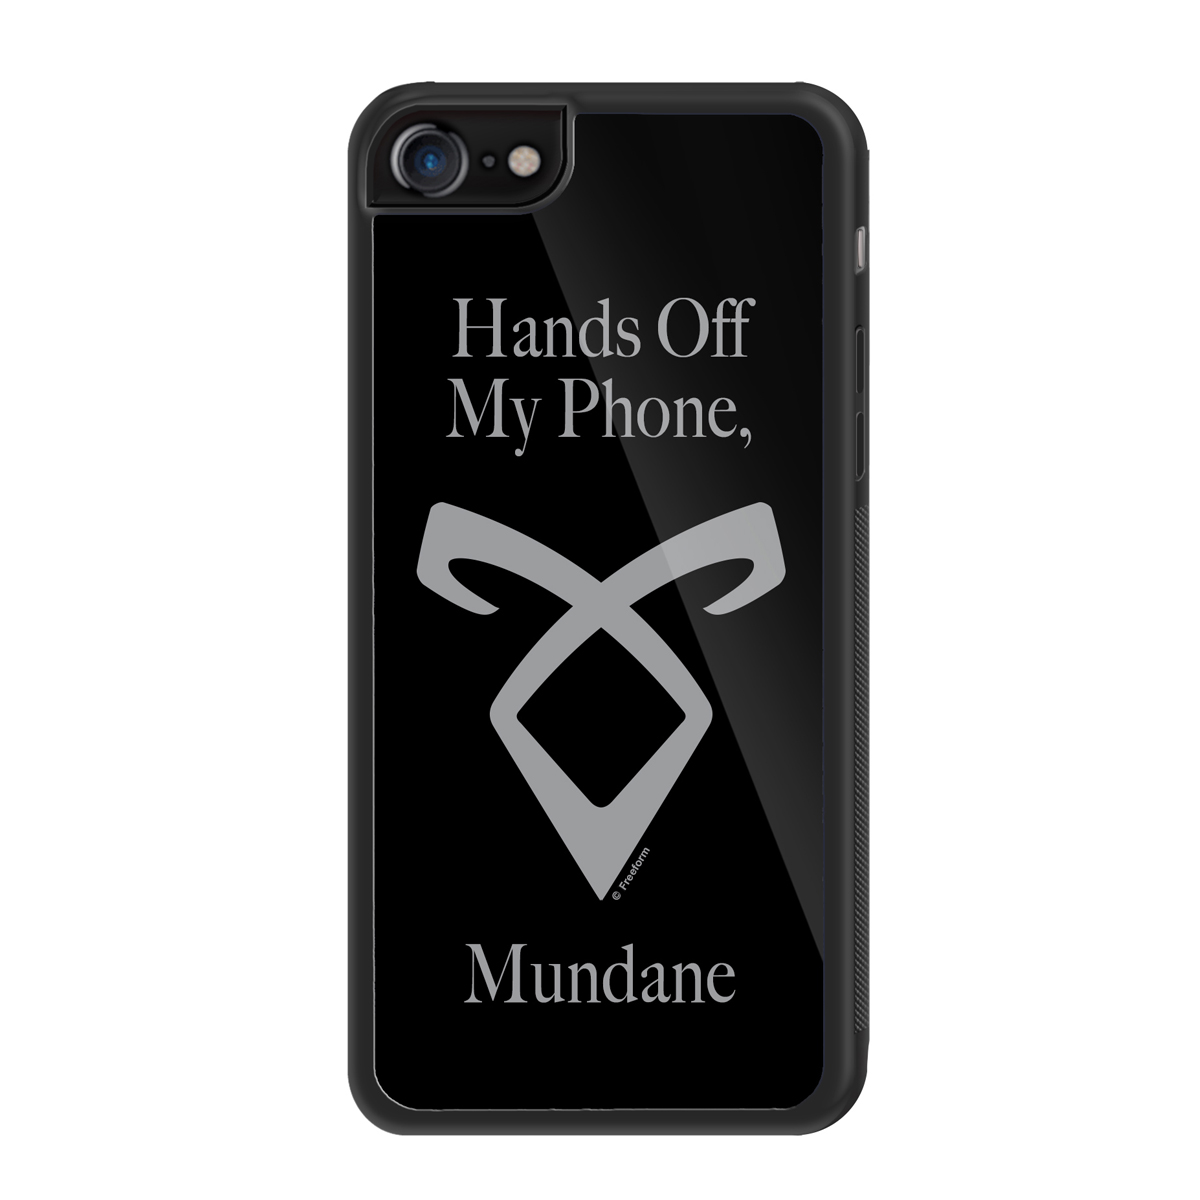 Shadowhunters Hands Off iPhone Case